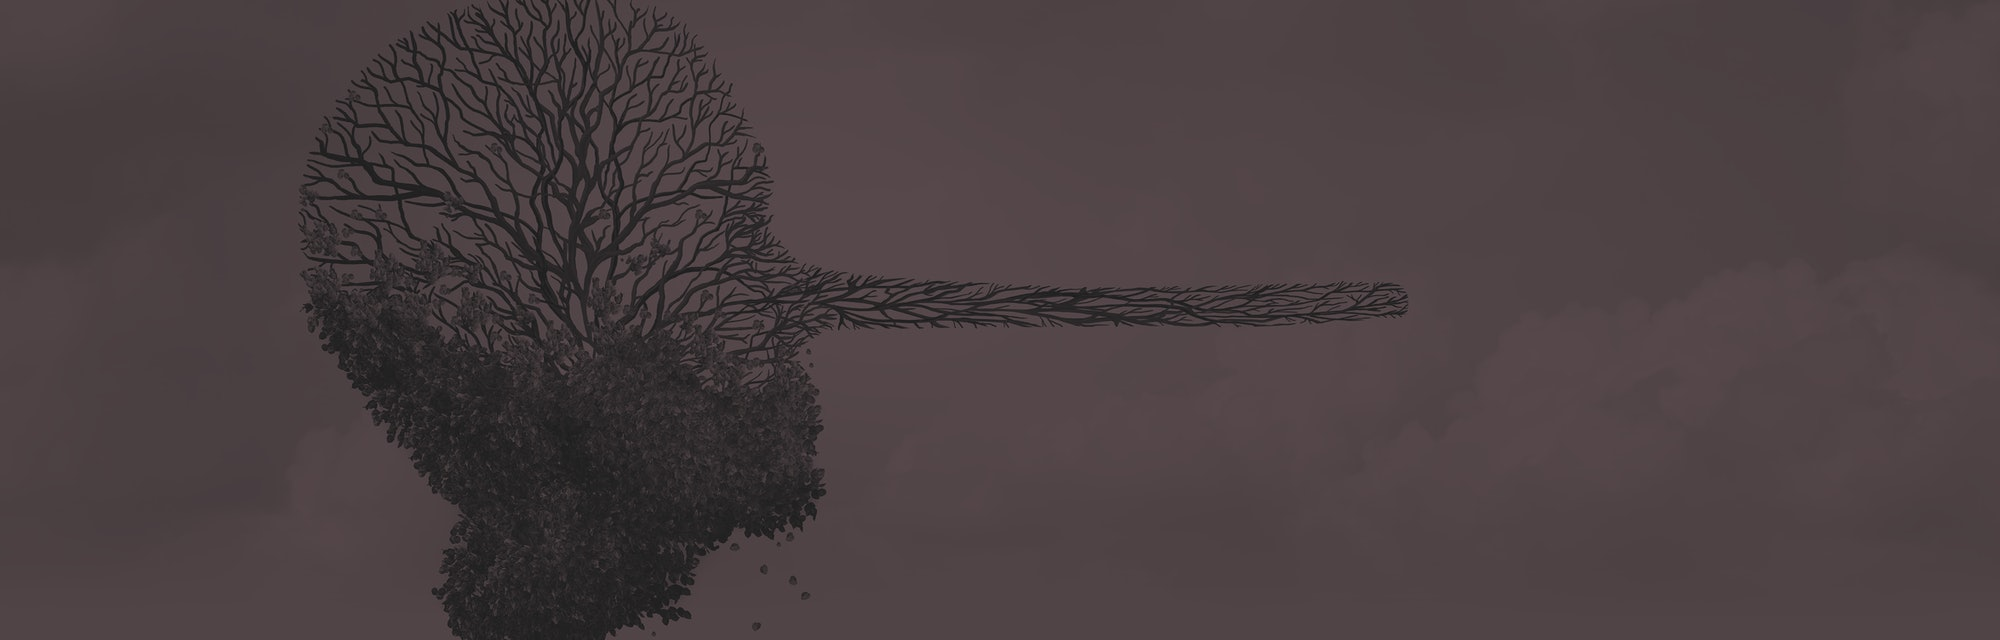 Climate change denier concept as a dying sick tree shaped as a human head with a long nose as an environmental metaphor symbol for global warming disinformation with 3D illustration elements.